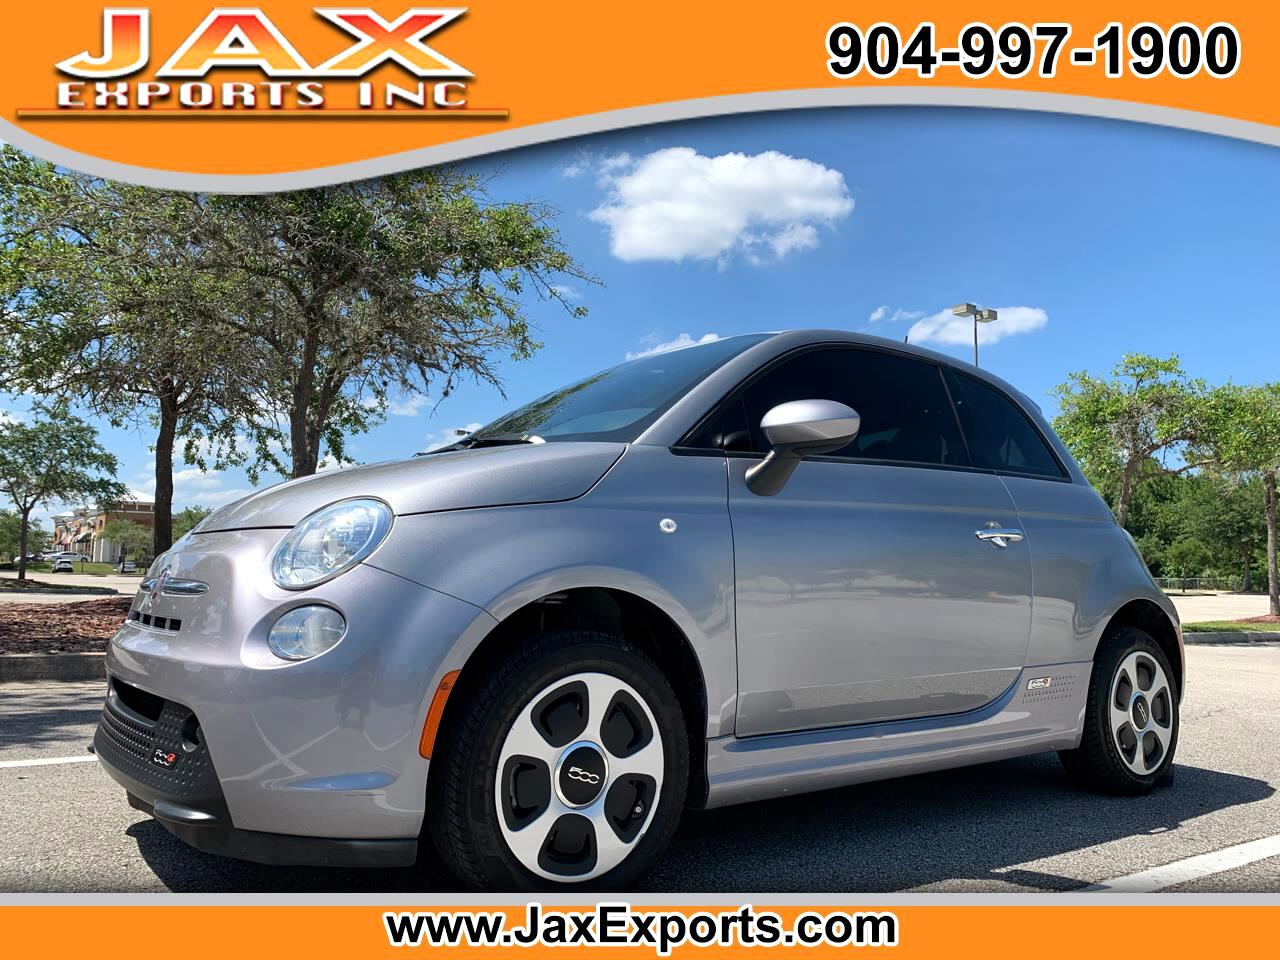 Fiat 500e BATTERY ELECTRIC 2dr HB 2016